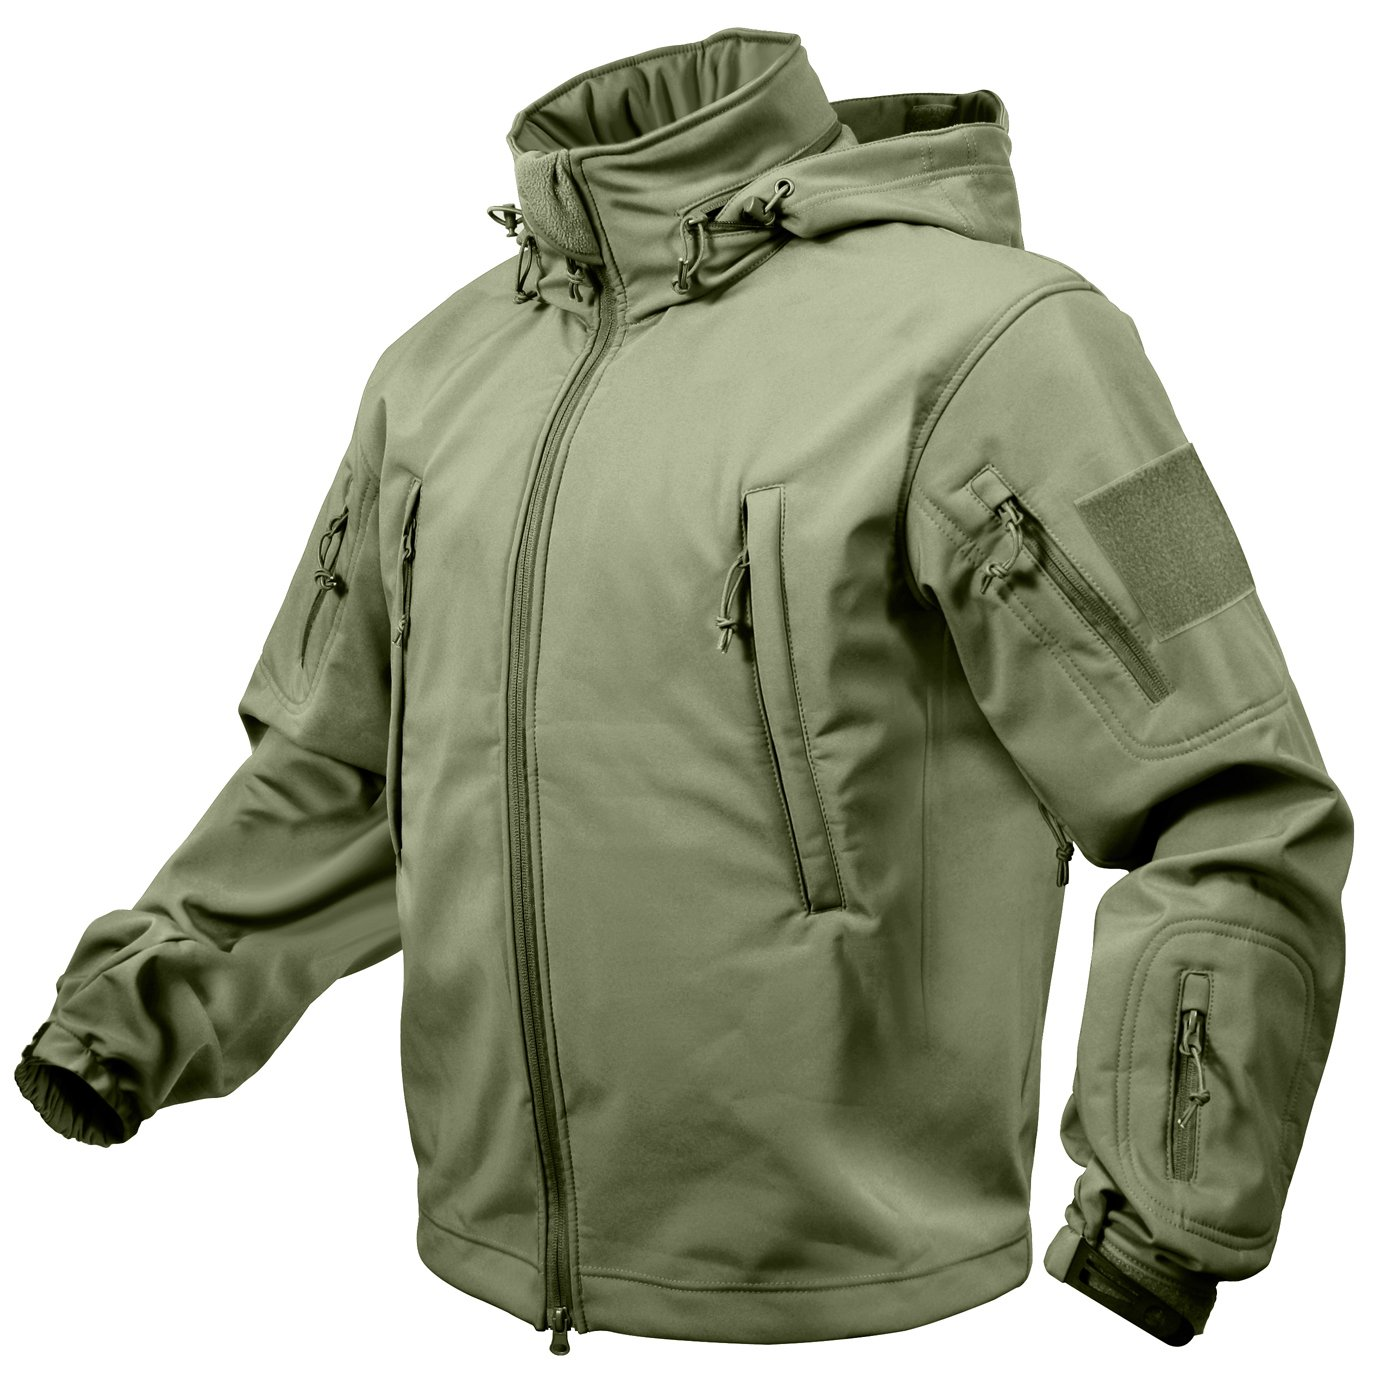 Rothco Special Ops Soft Shell Jacket, Olive Drab, XX-Large by Rothco